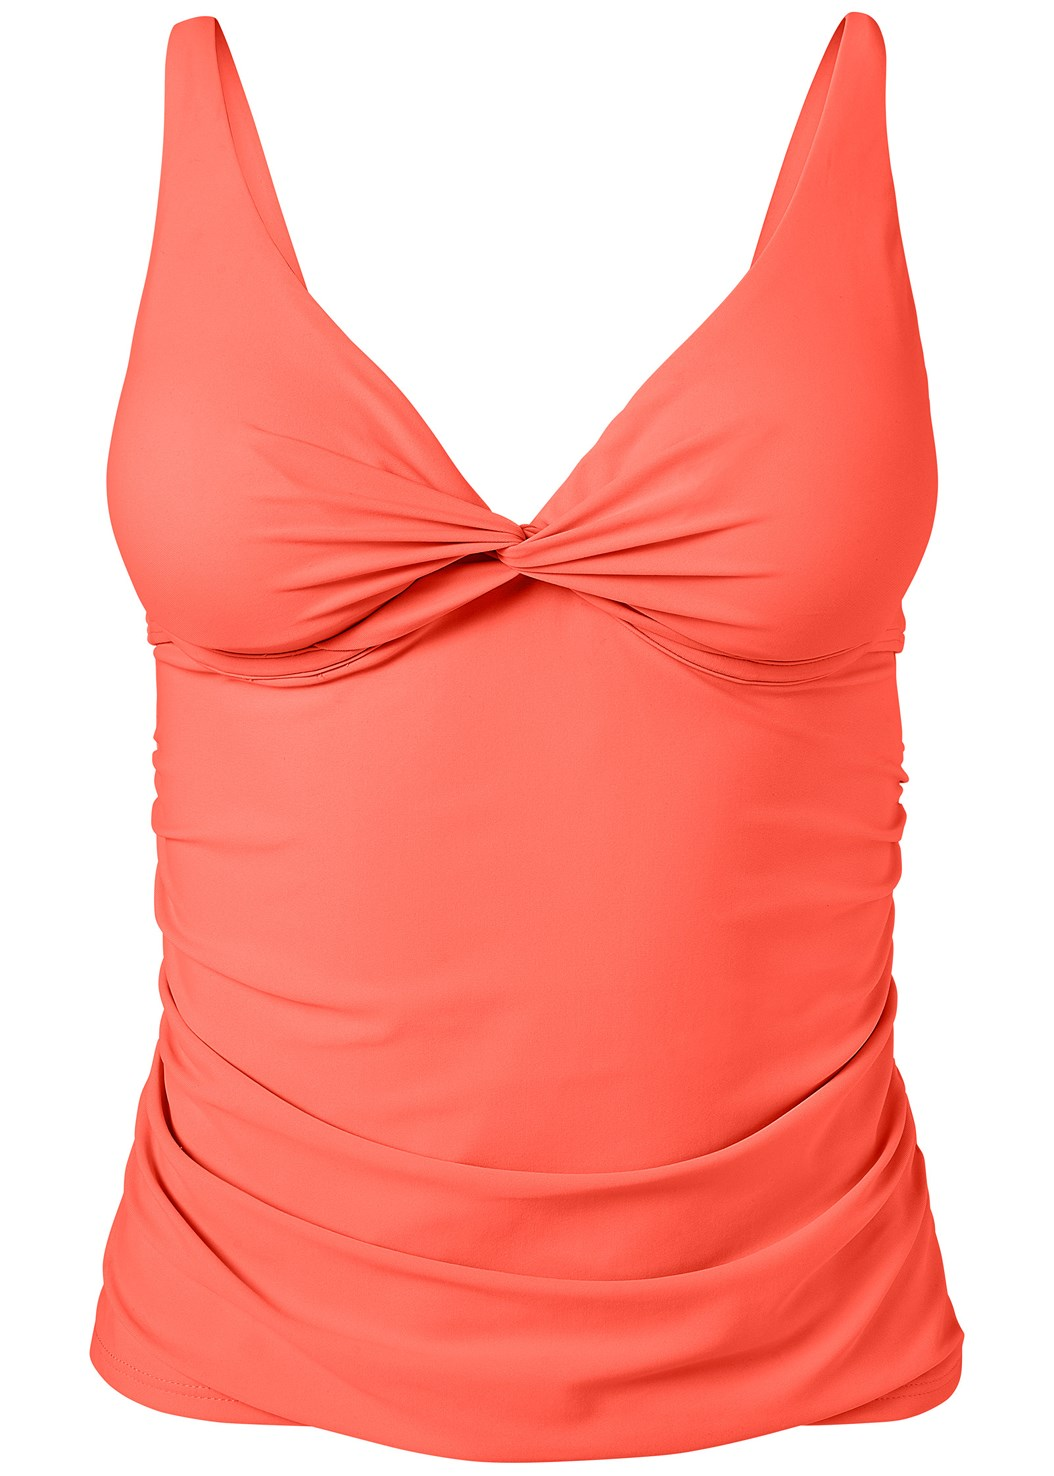 Underwire Twist Tankini,Mid Rise Swim Skirt Bikini Bottom,Gathered Neckline Dress